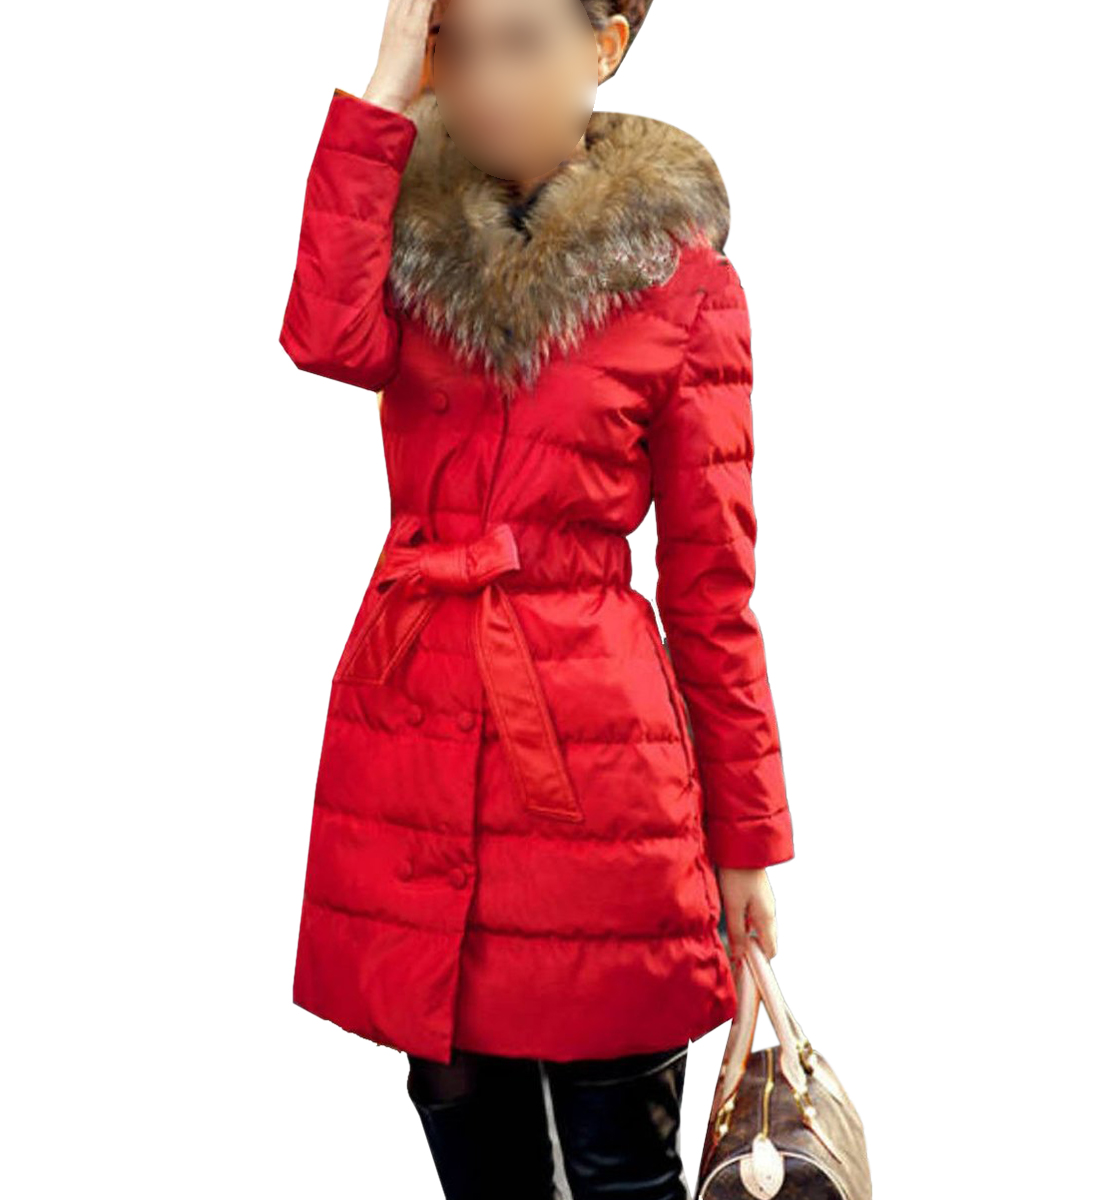 SAF-Long down cotton trench coat double Breasted padded jacket belt fur 2-COLORS sab c165 lm saf c165 lm